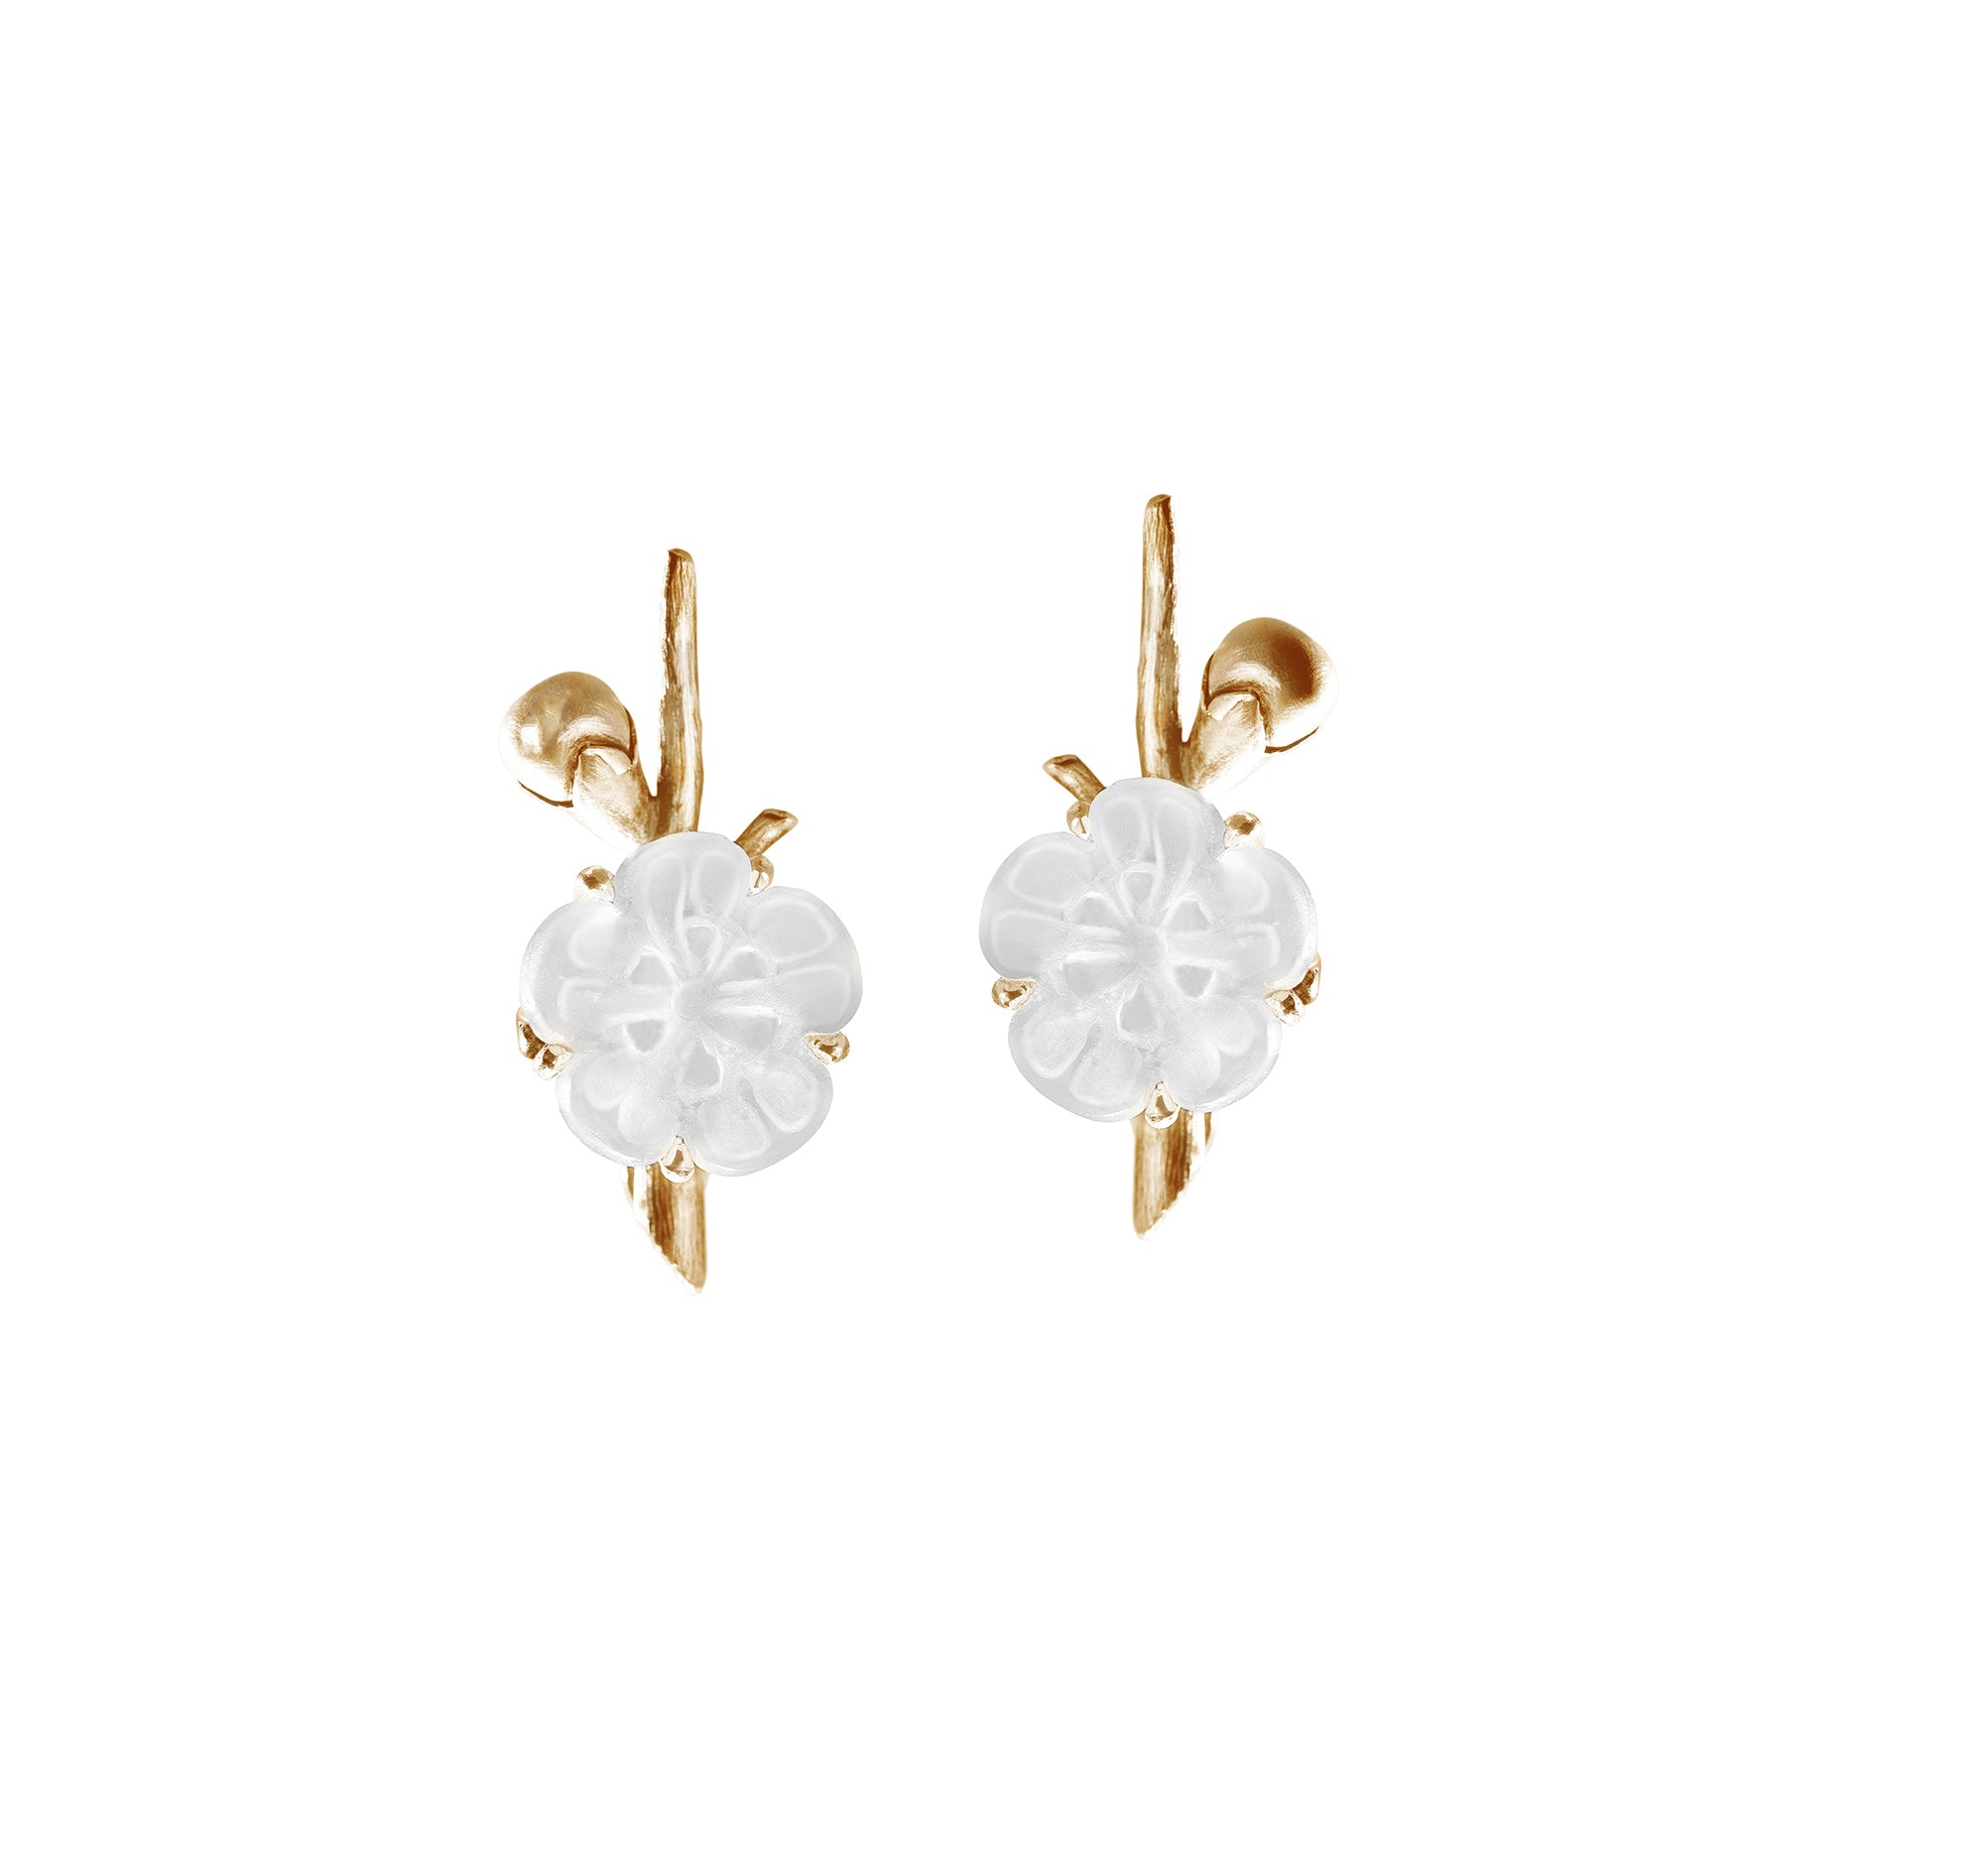 Sakura earrings in 14 KT yellow gold